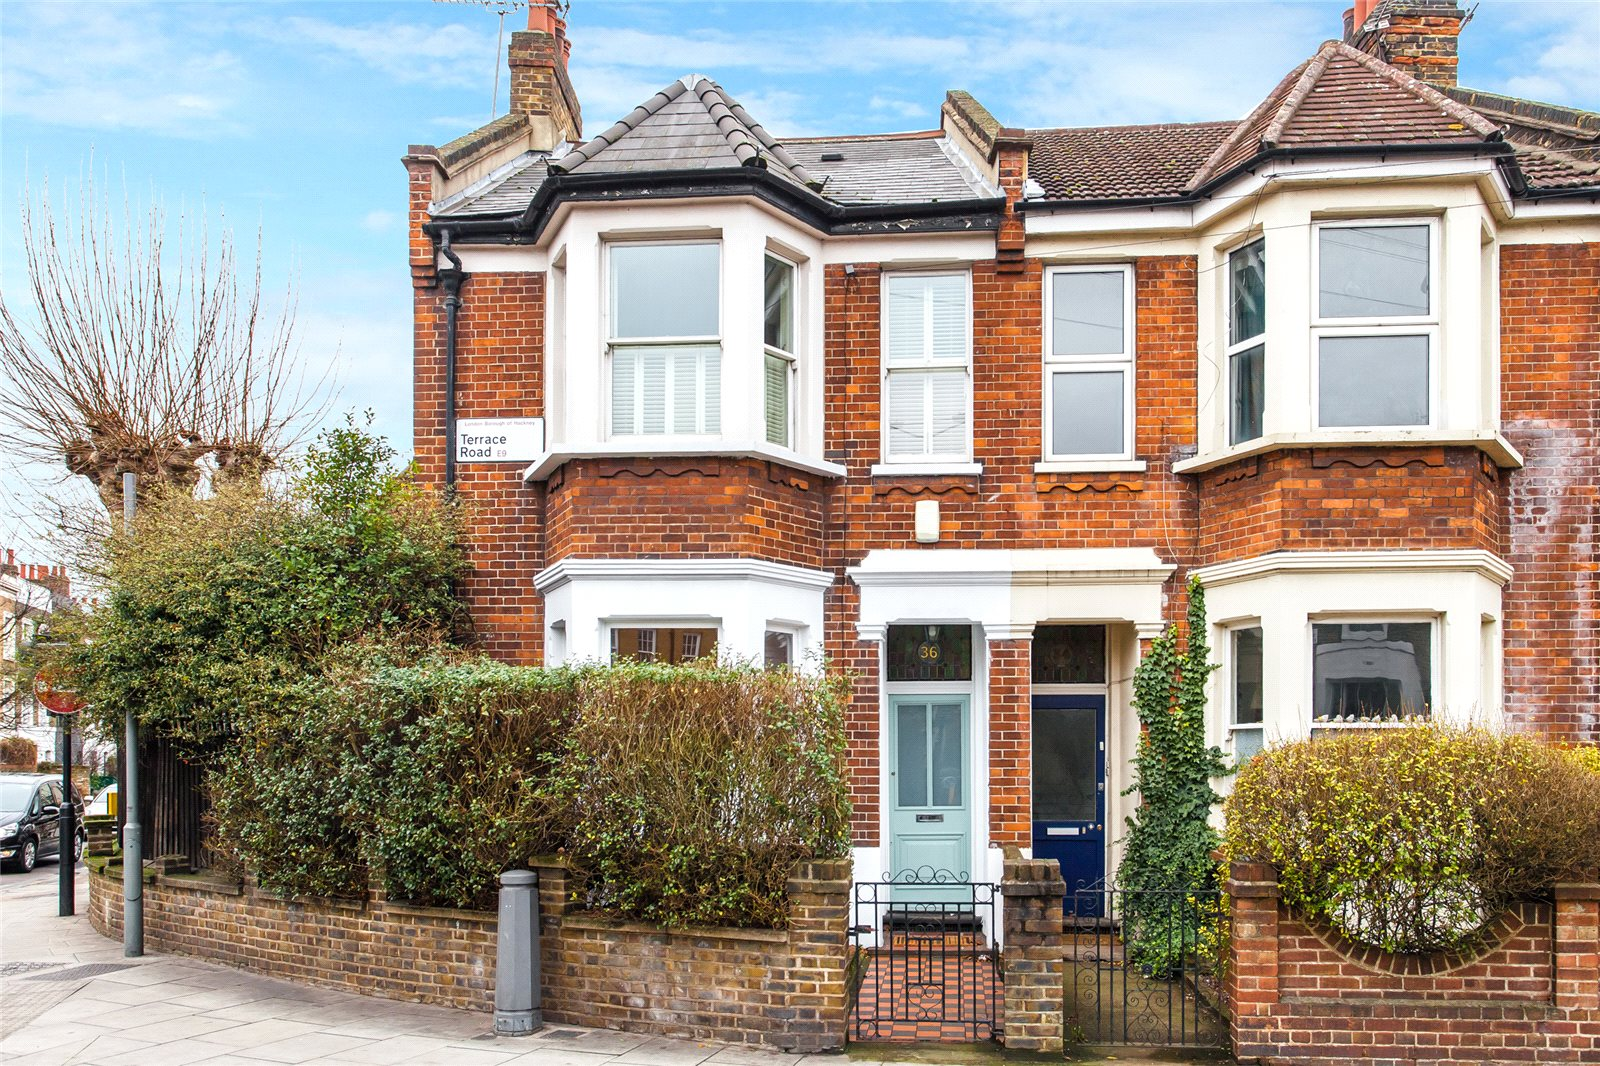 3 Bedrooms House for sale in Terrace Road, South Hackney, E9